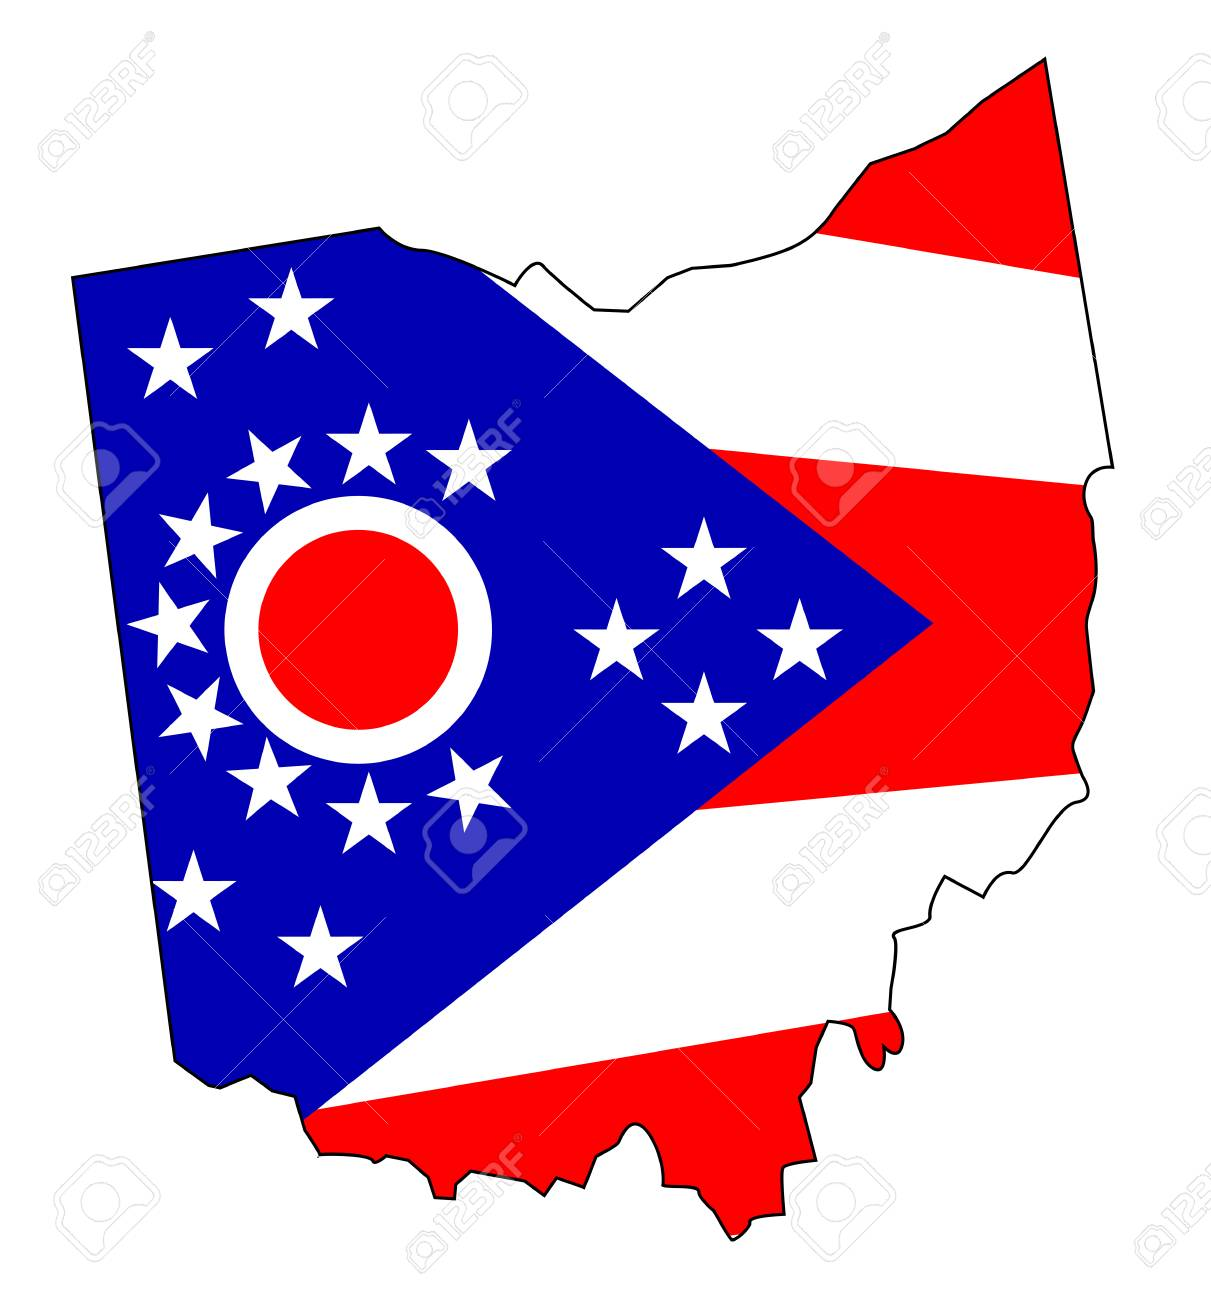 State Of Ohio Clipart